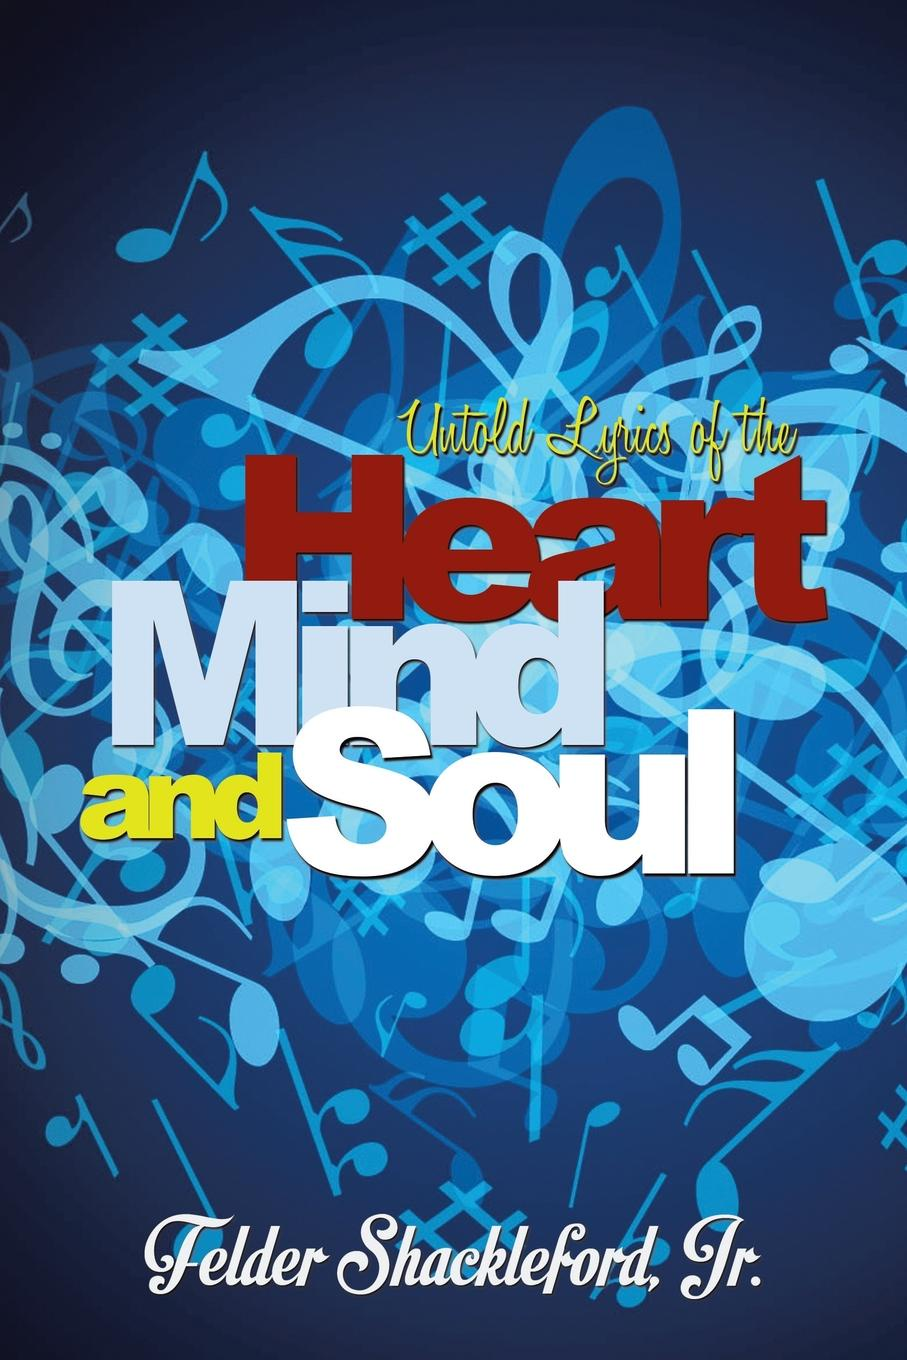 лучшая цена Felder Shackleford Jr Untold Lyrics of the Heart, Mind and Soul